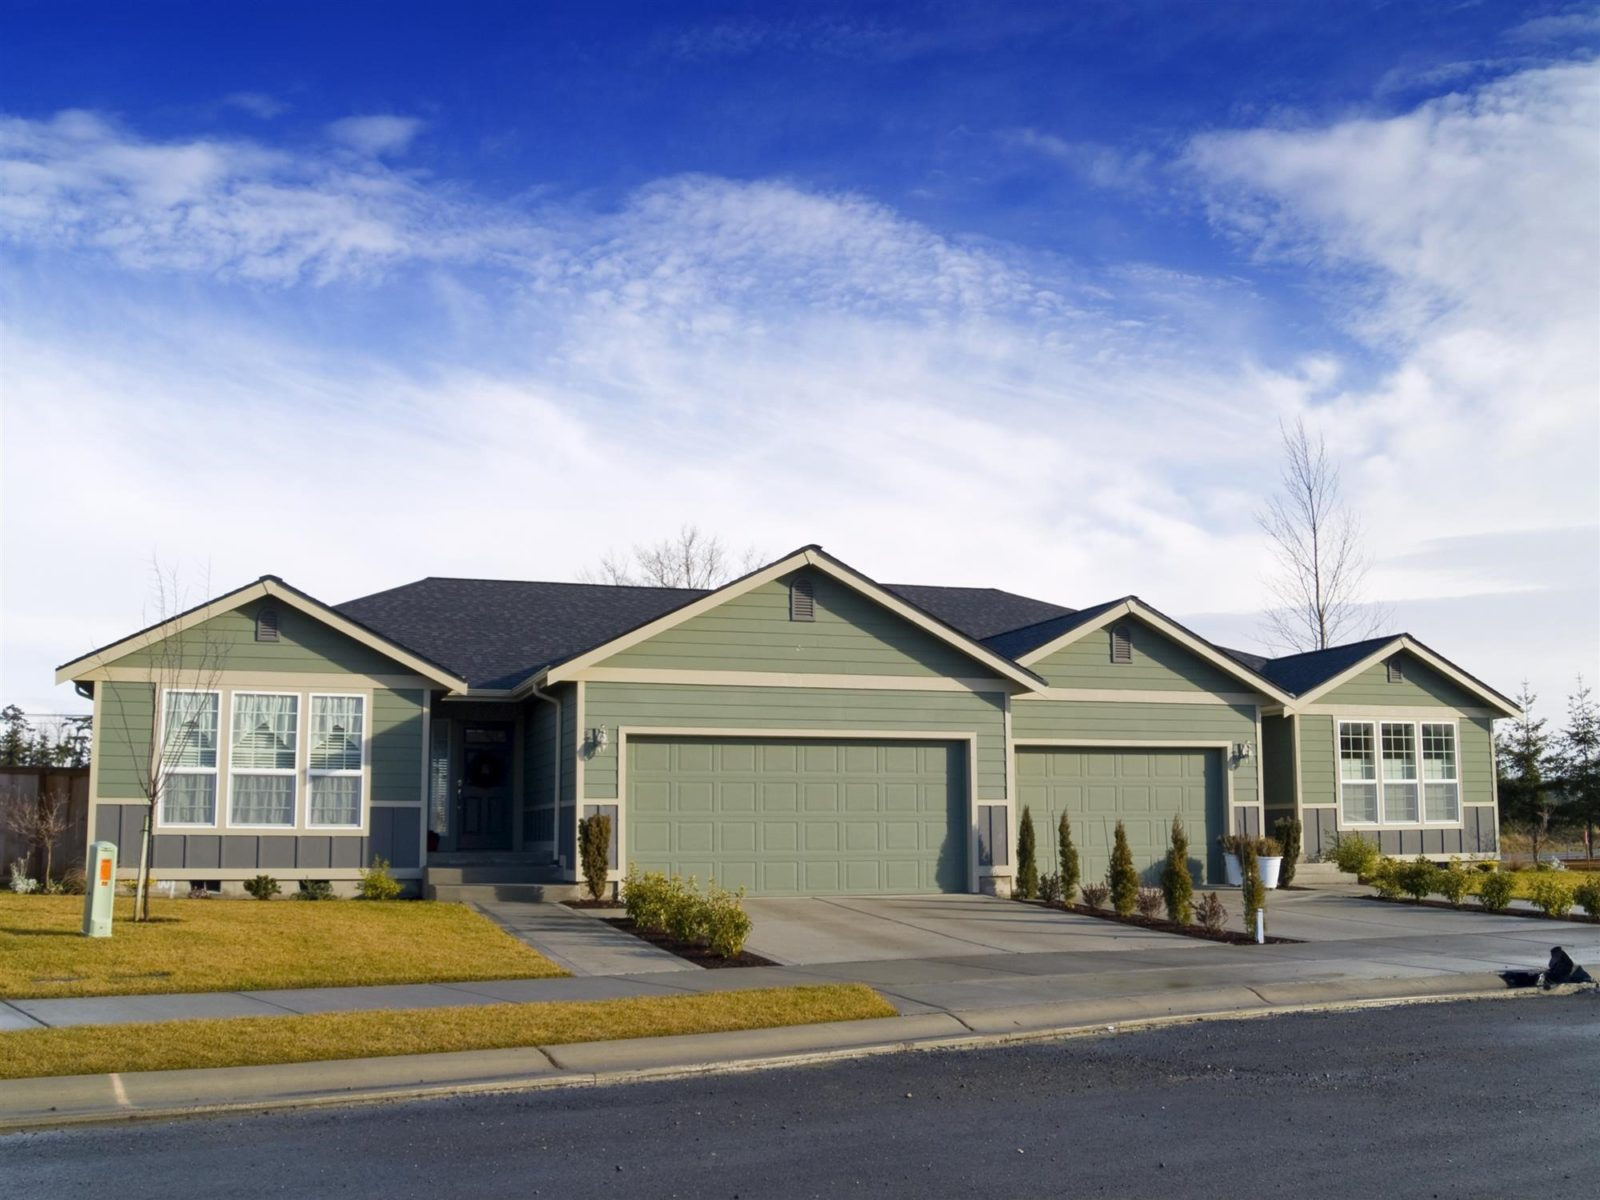 difference between semi-detached homes and townhomes